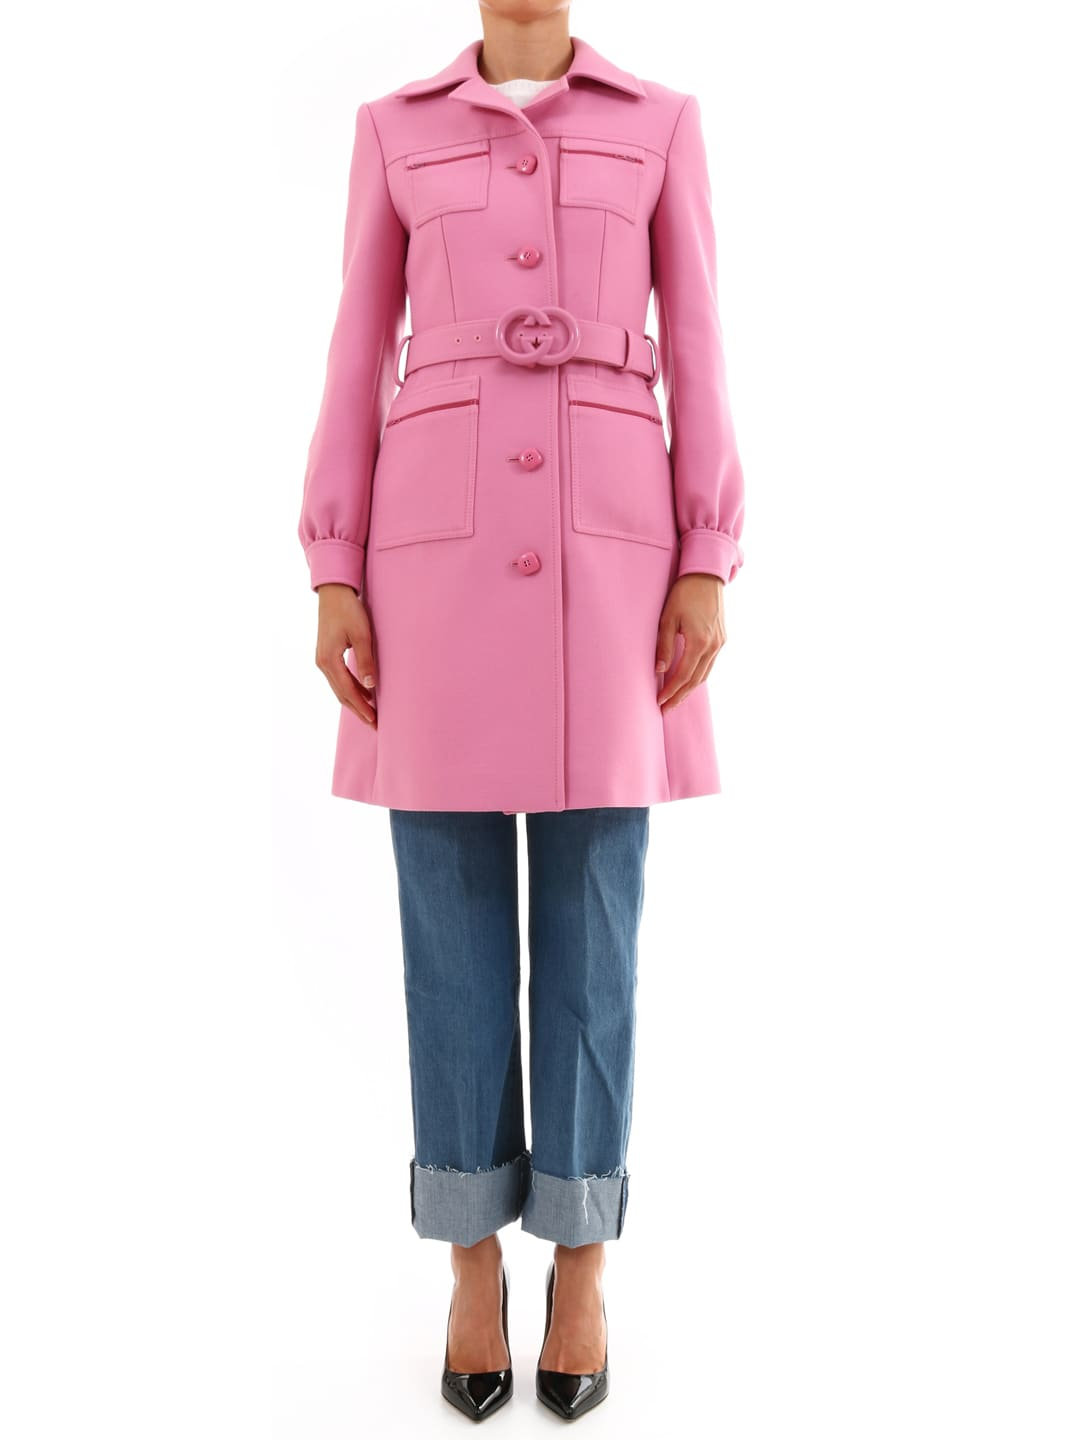 Gucci Pink Wool Coat